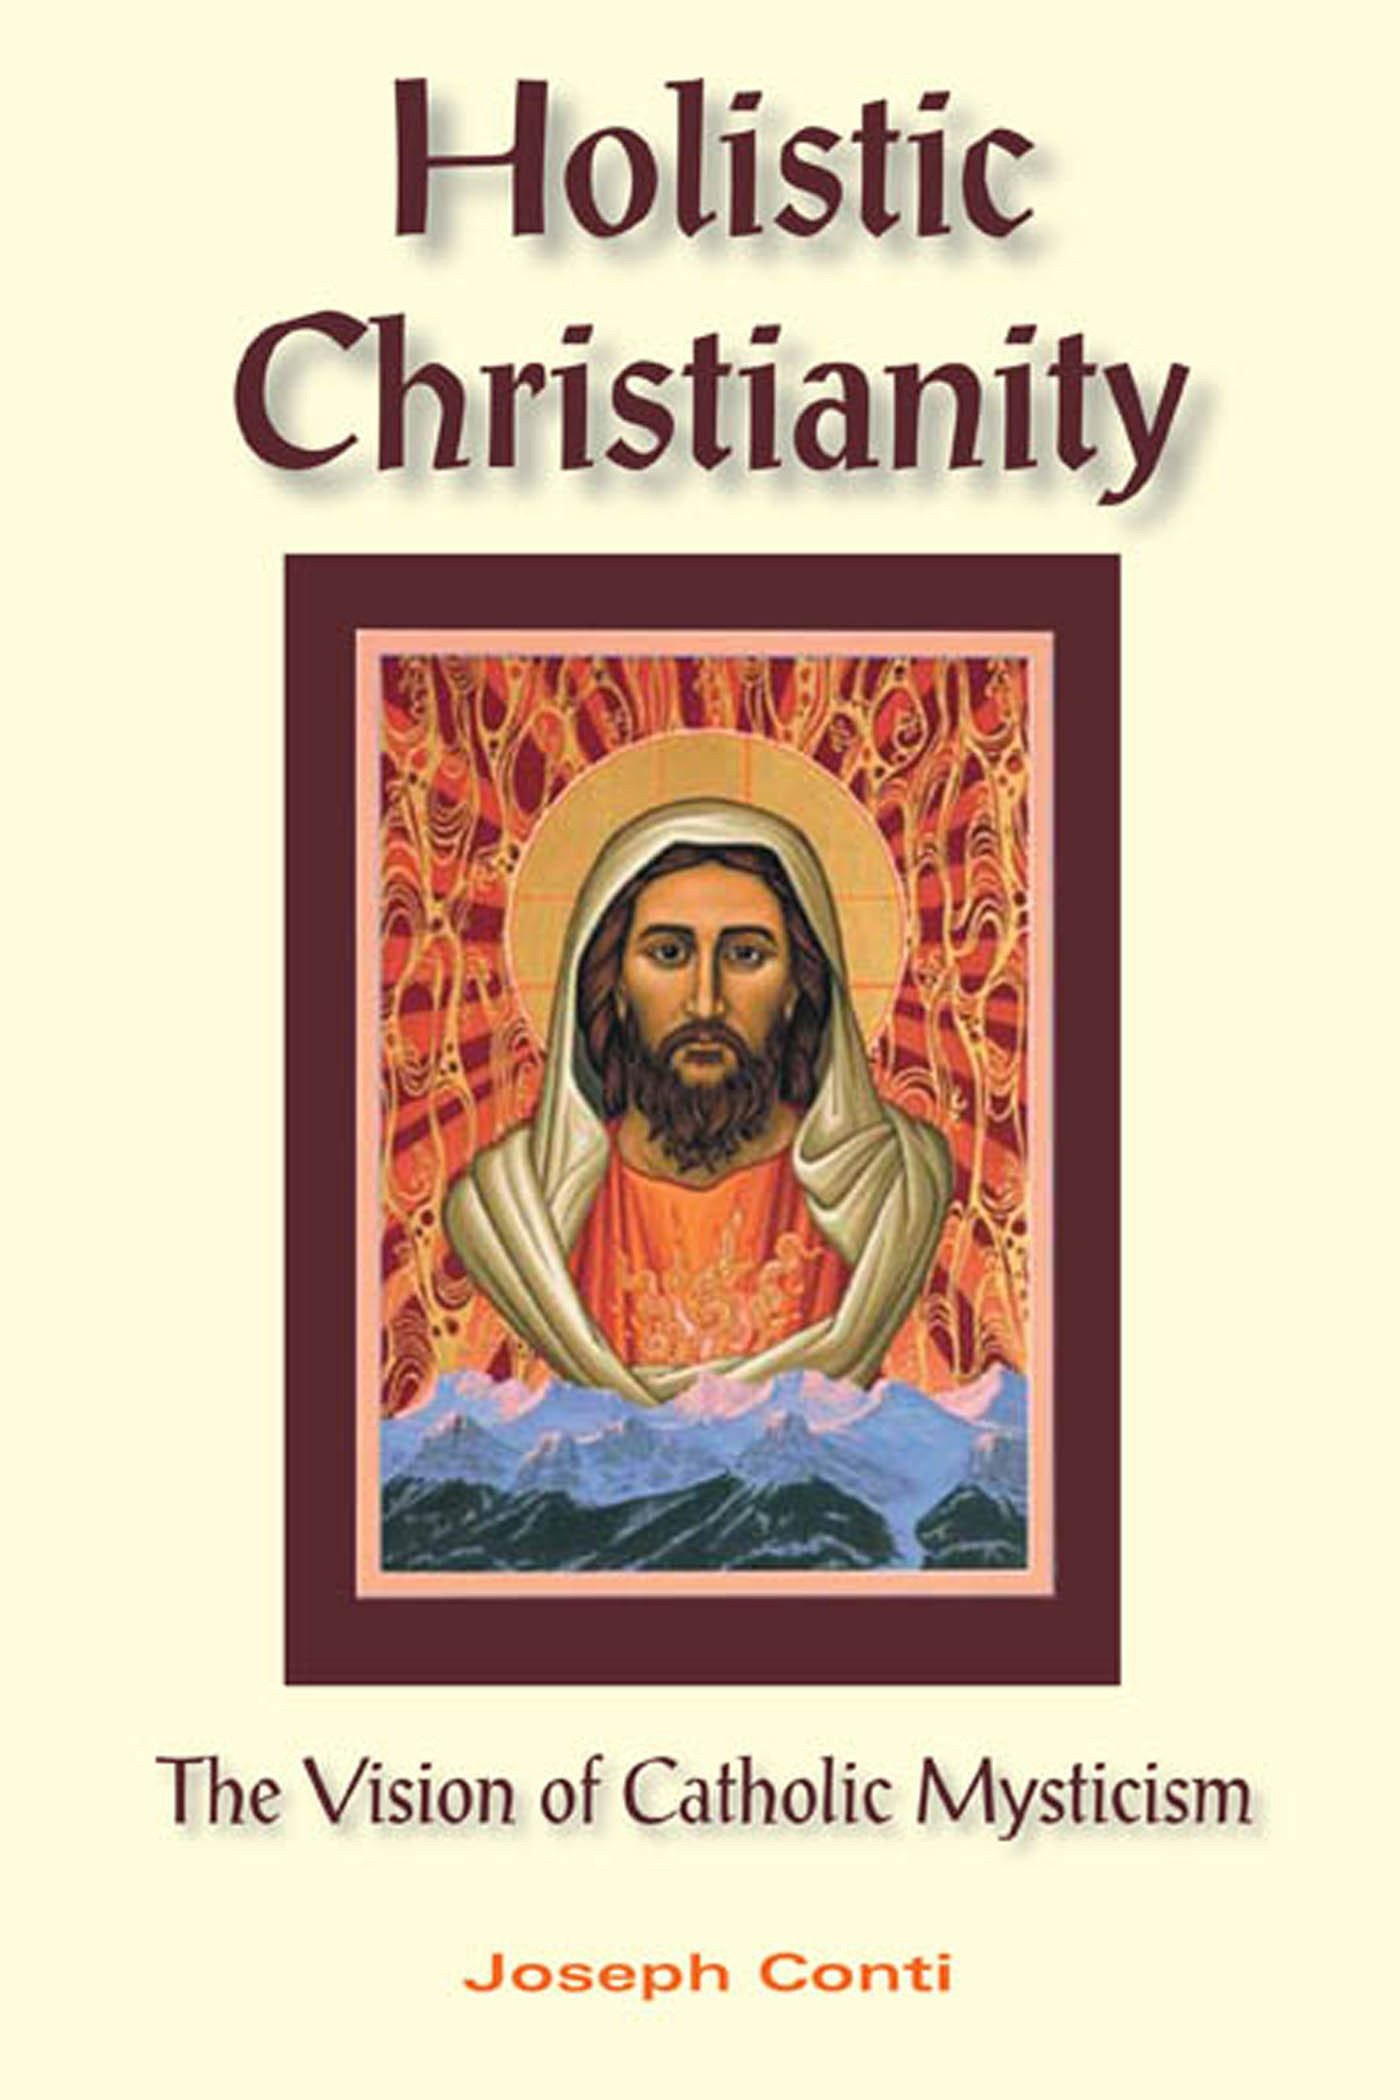 Holistic Christianity: The Vision of Catholic Mysticism PDF